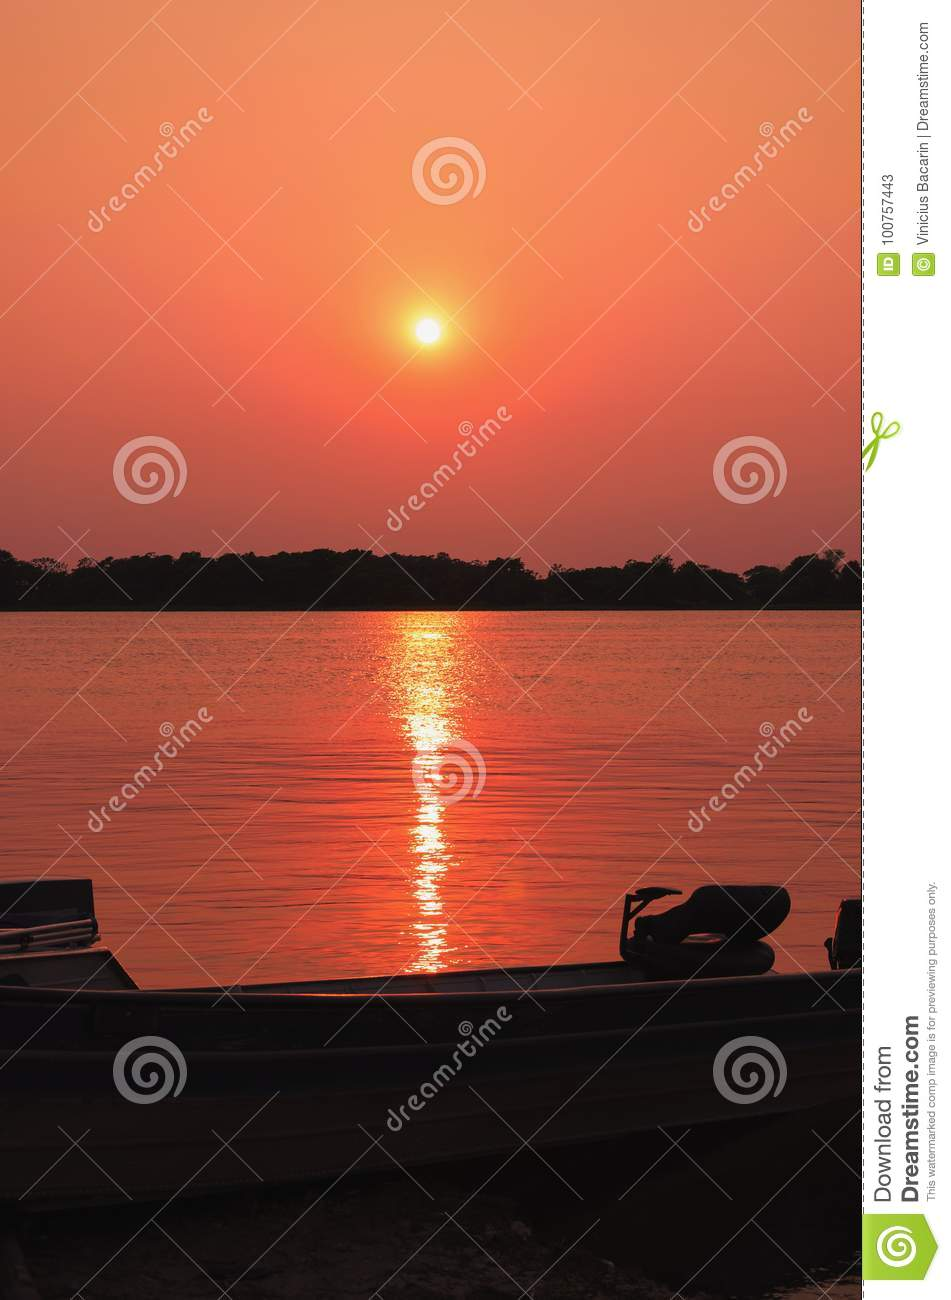 Wonderful landscape of a silhouette of a boat on a amazing sunset